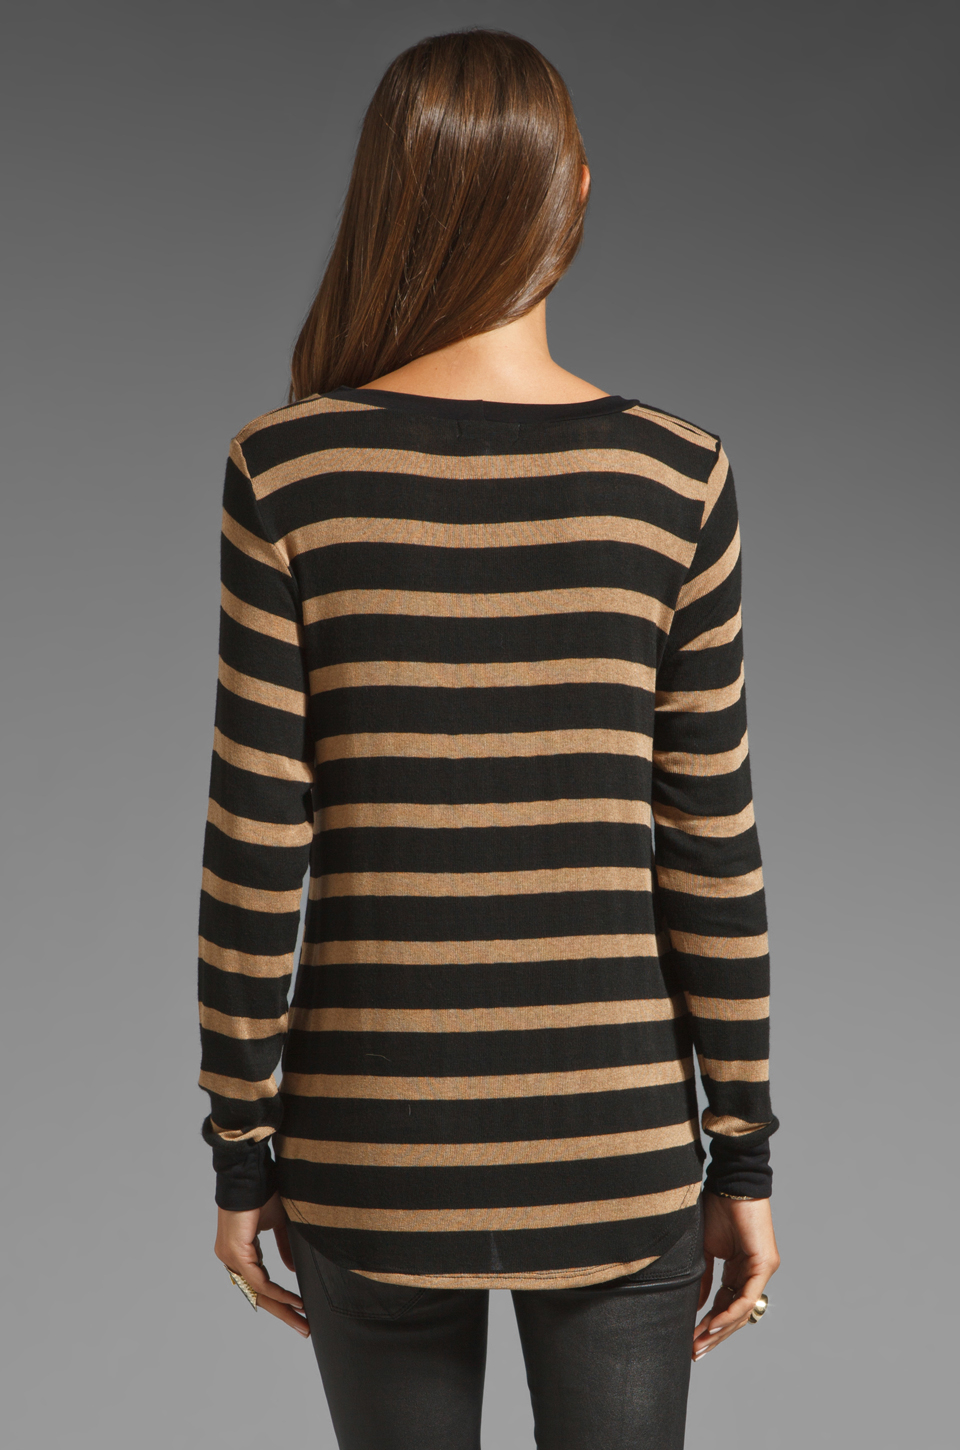 Lna Spencer Striped Sweater in Black | Lyst